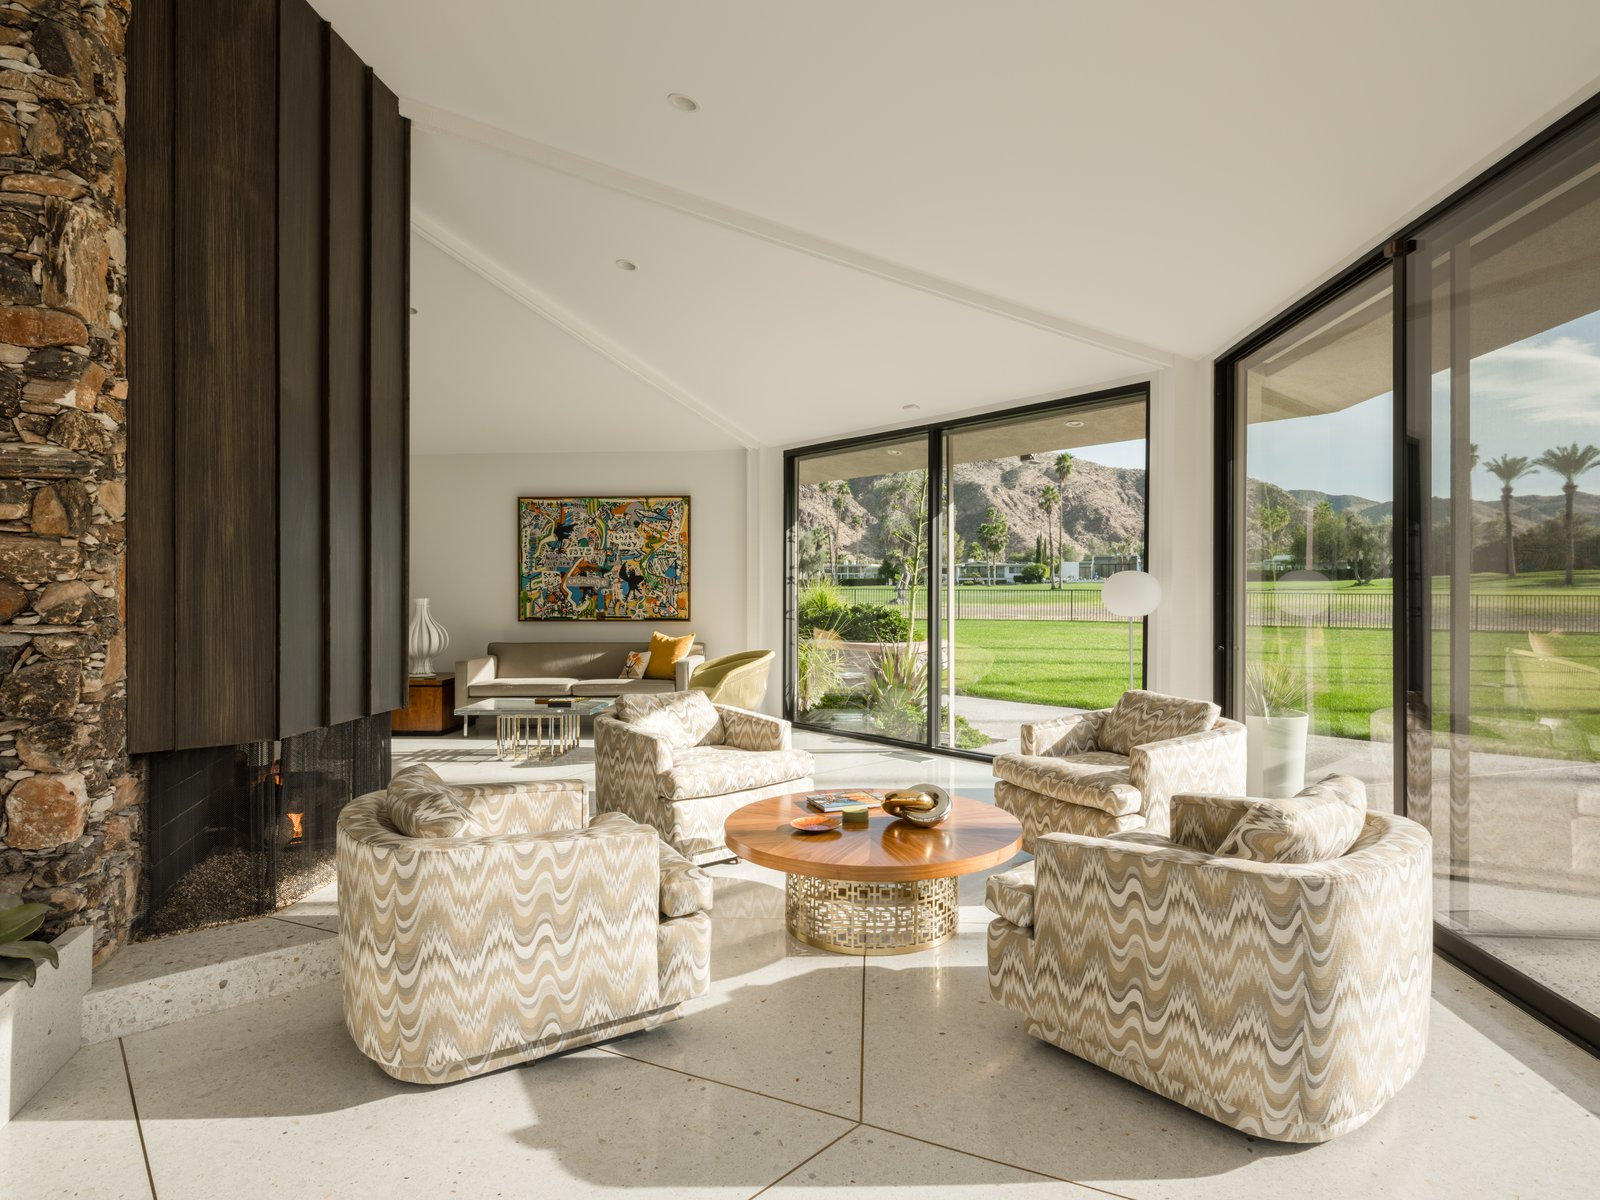 Living, Coffee Tables, Two-Sided, Sofa, Chair, Terrazzo, Floor, End Tables, Lamps, Recessed, and Table An alternate view of the living space and wood-paneled fireplace.  Best Living Floor Two-Sided Photos from Own William Krisel's Palm Springs Pod House For $2.5M